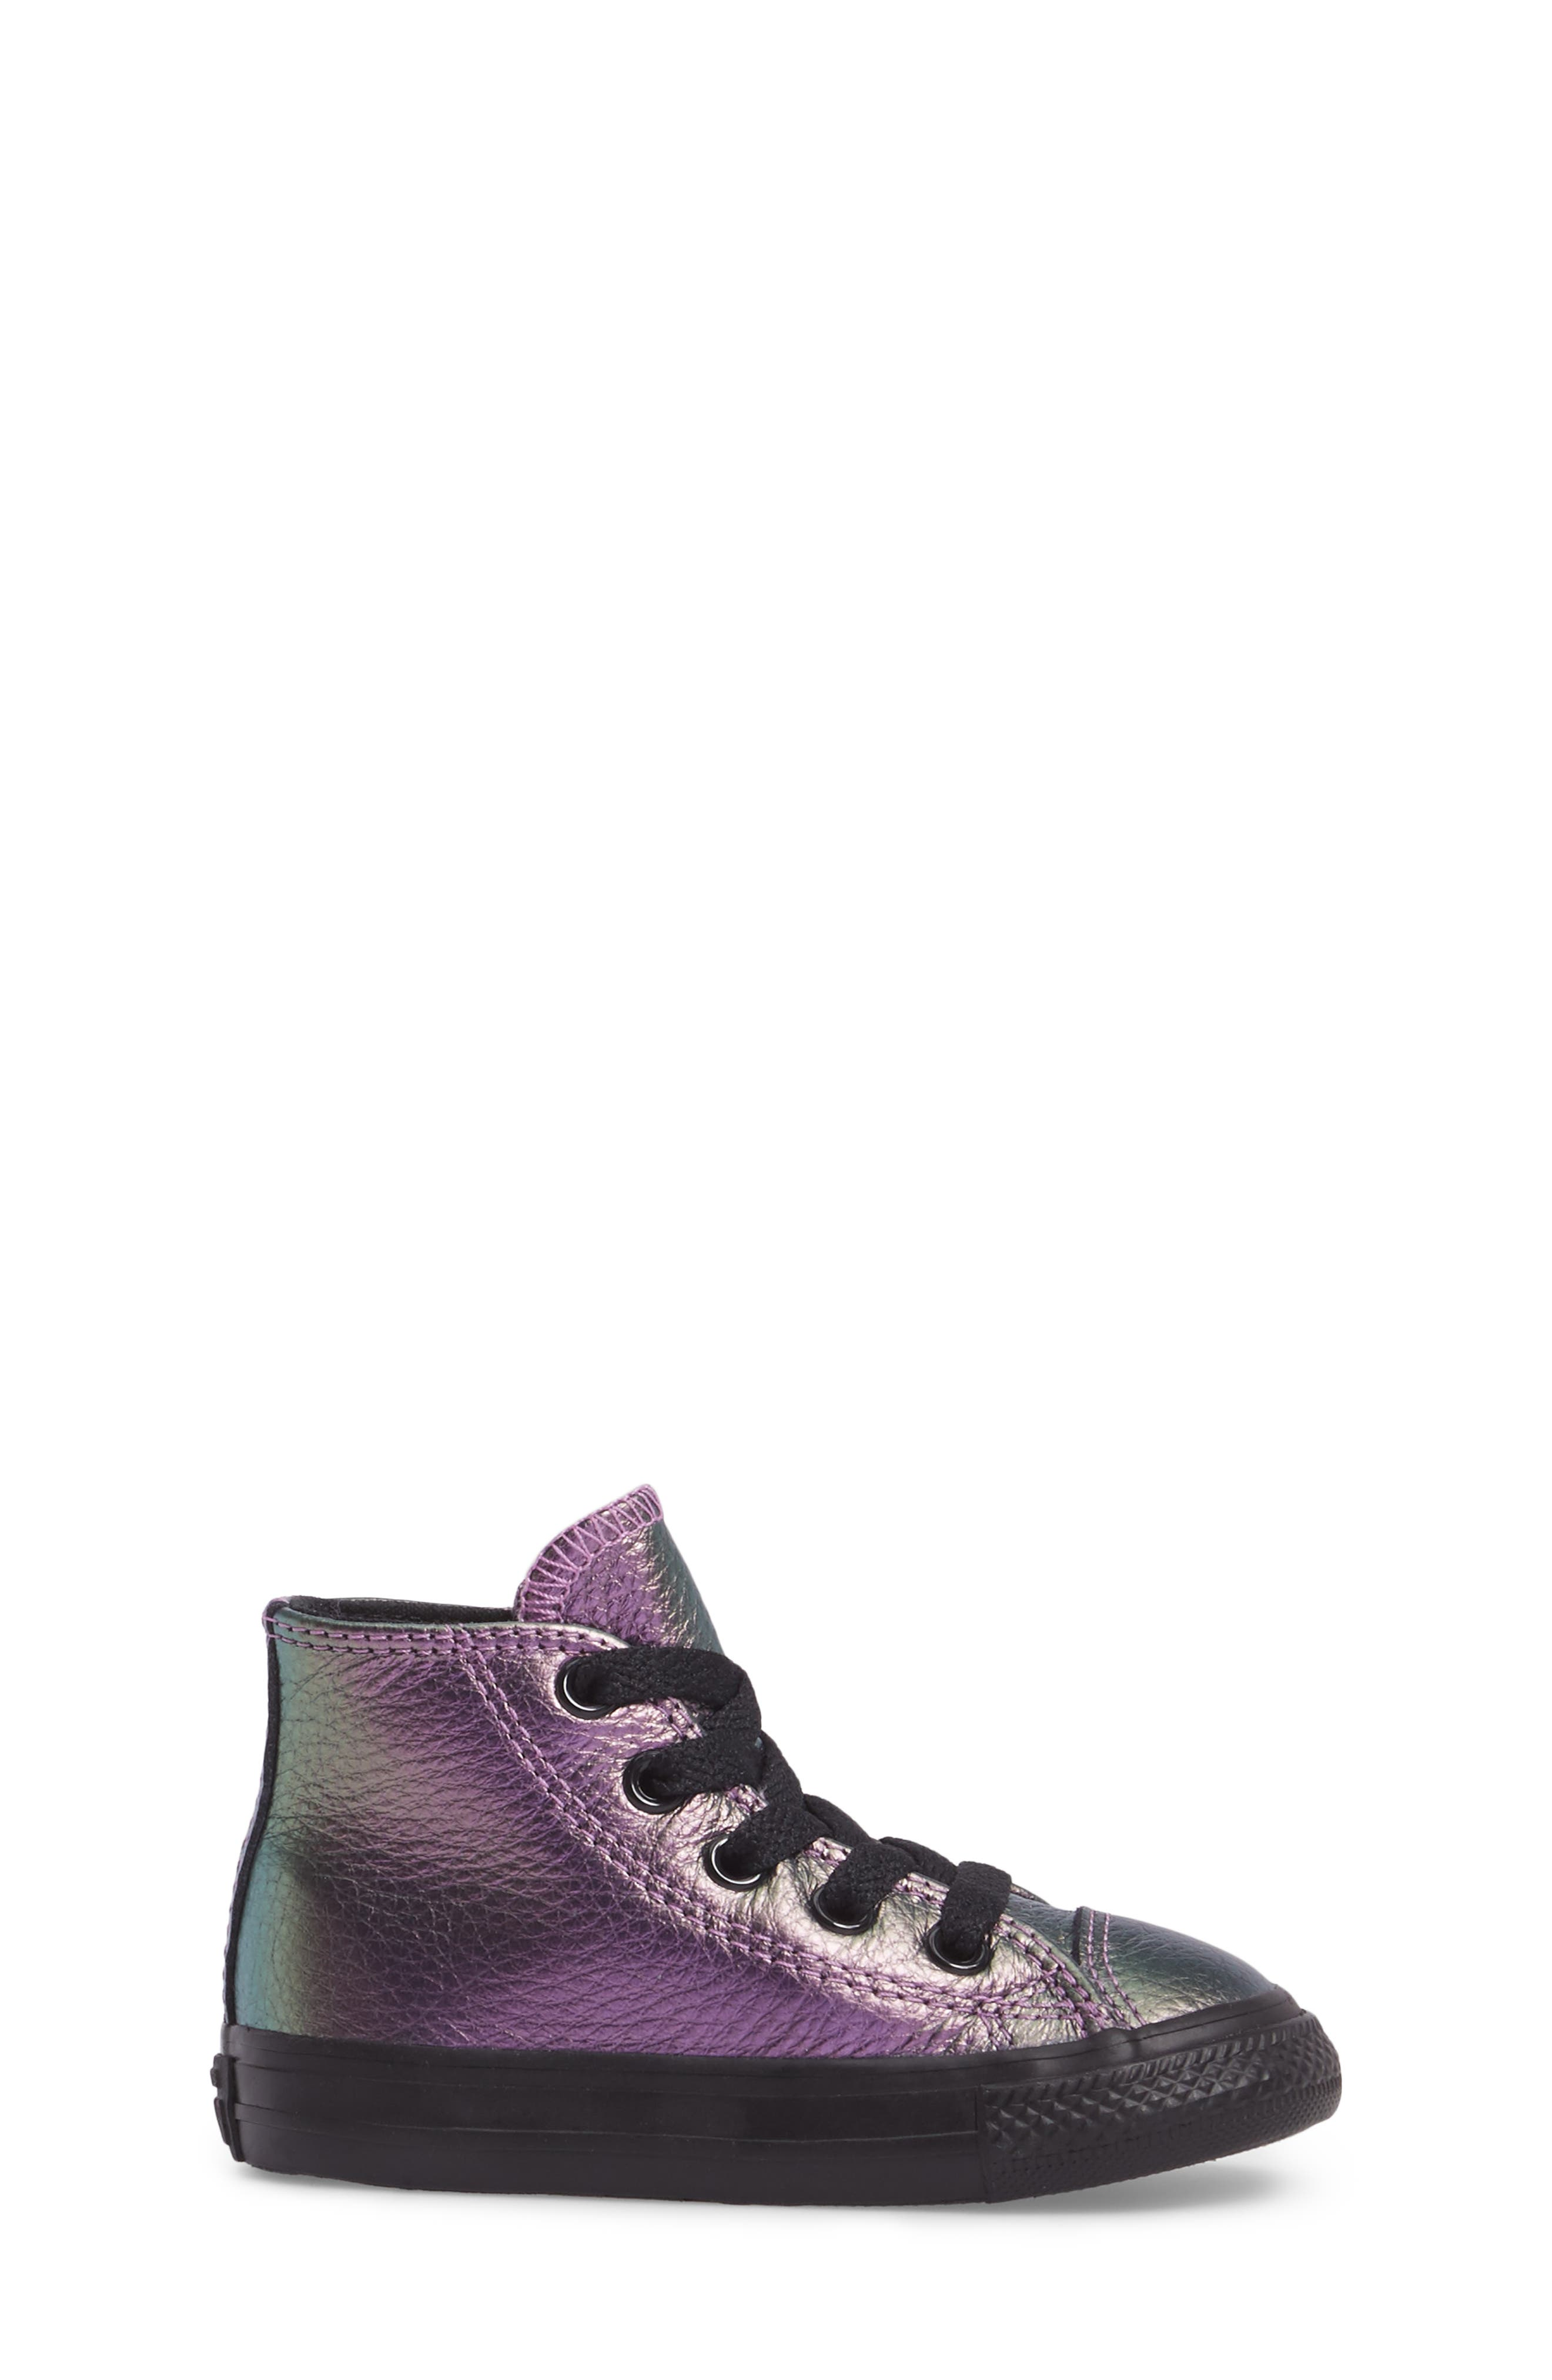 Alternate Image 3  - Converse Chuck Taylor® All Star® Iridescent Leather High Top Sneaker (Baby, Walker, Toddler & Little Kid)